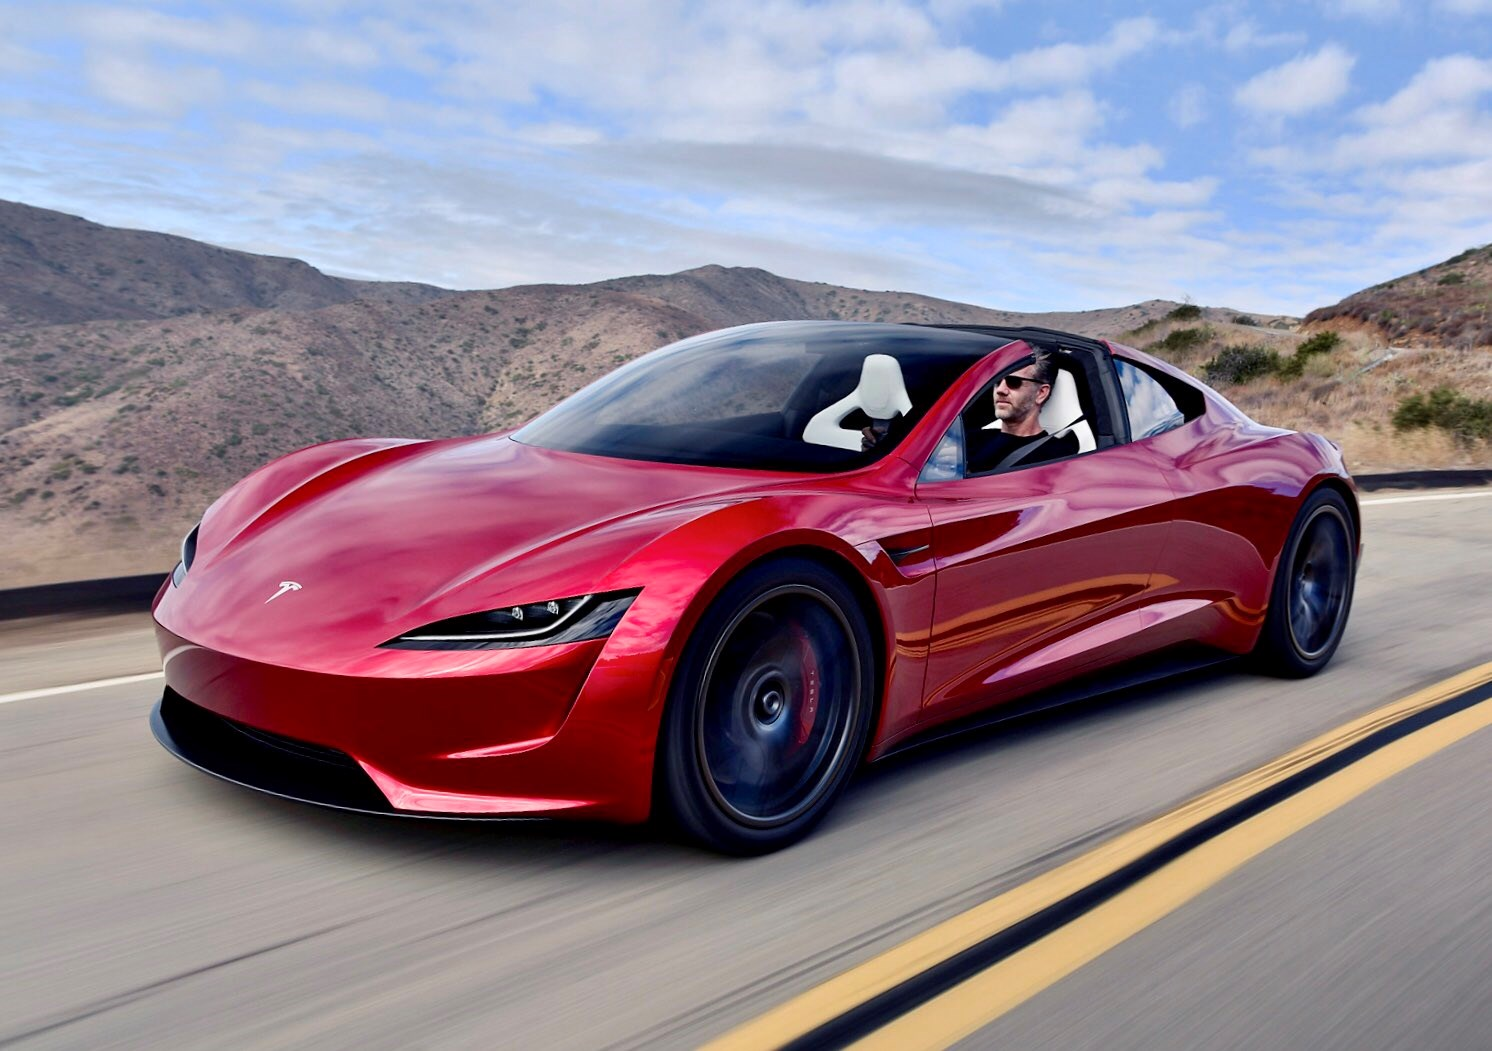 New Tesla Roadster Musk Hints At Rocket Ed Performance